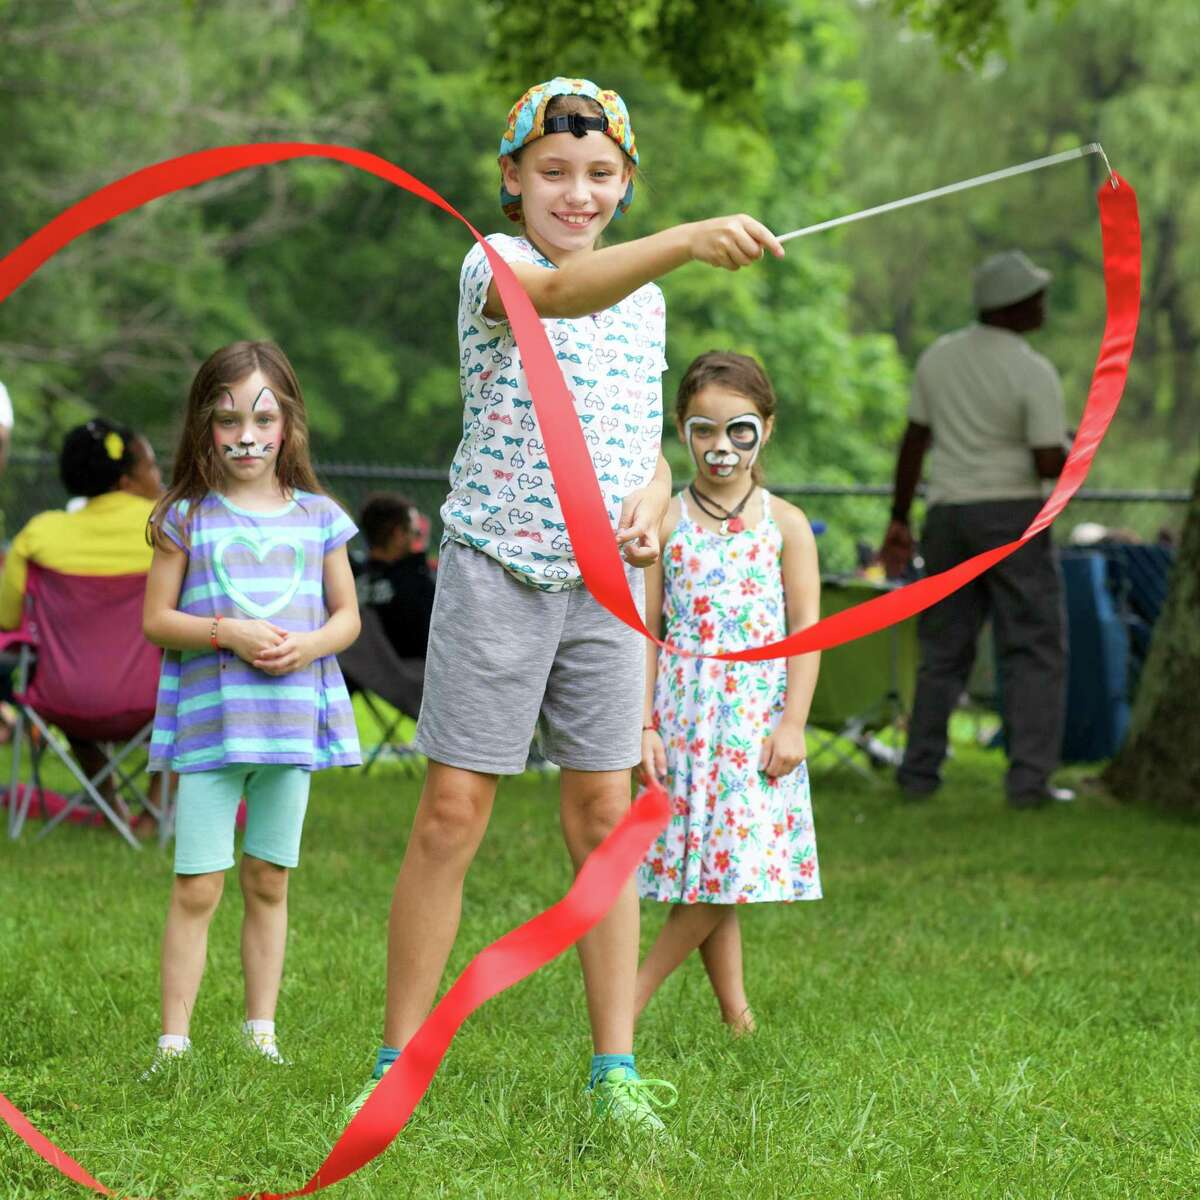 Enjoying some ribbon dancing are sisters (left to right) Ripley Frantons (age 5), Olivia Franson (age 10) and Rowan Franson (age 5) all from Newtown at the Sixth Annual Westside Reggae Festival that took place on Sunday, July 23rd, 2017, at Ives Concert Park in Danbury, CT.